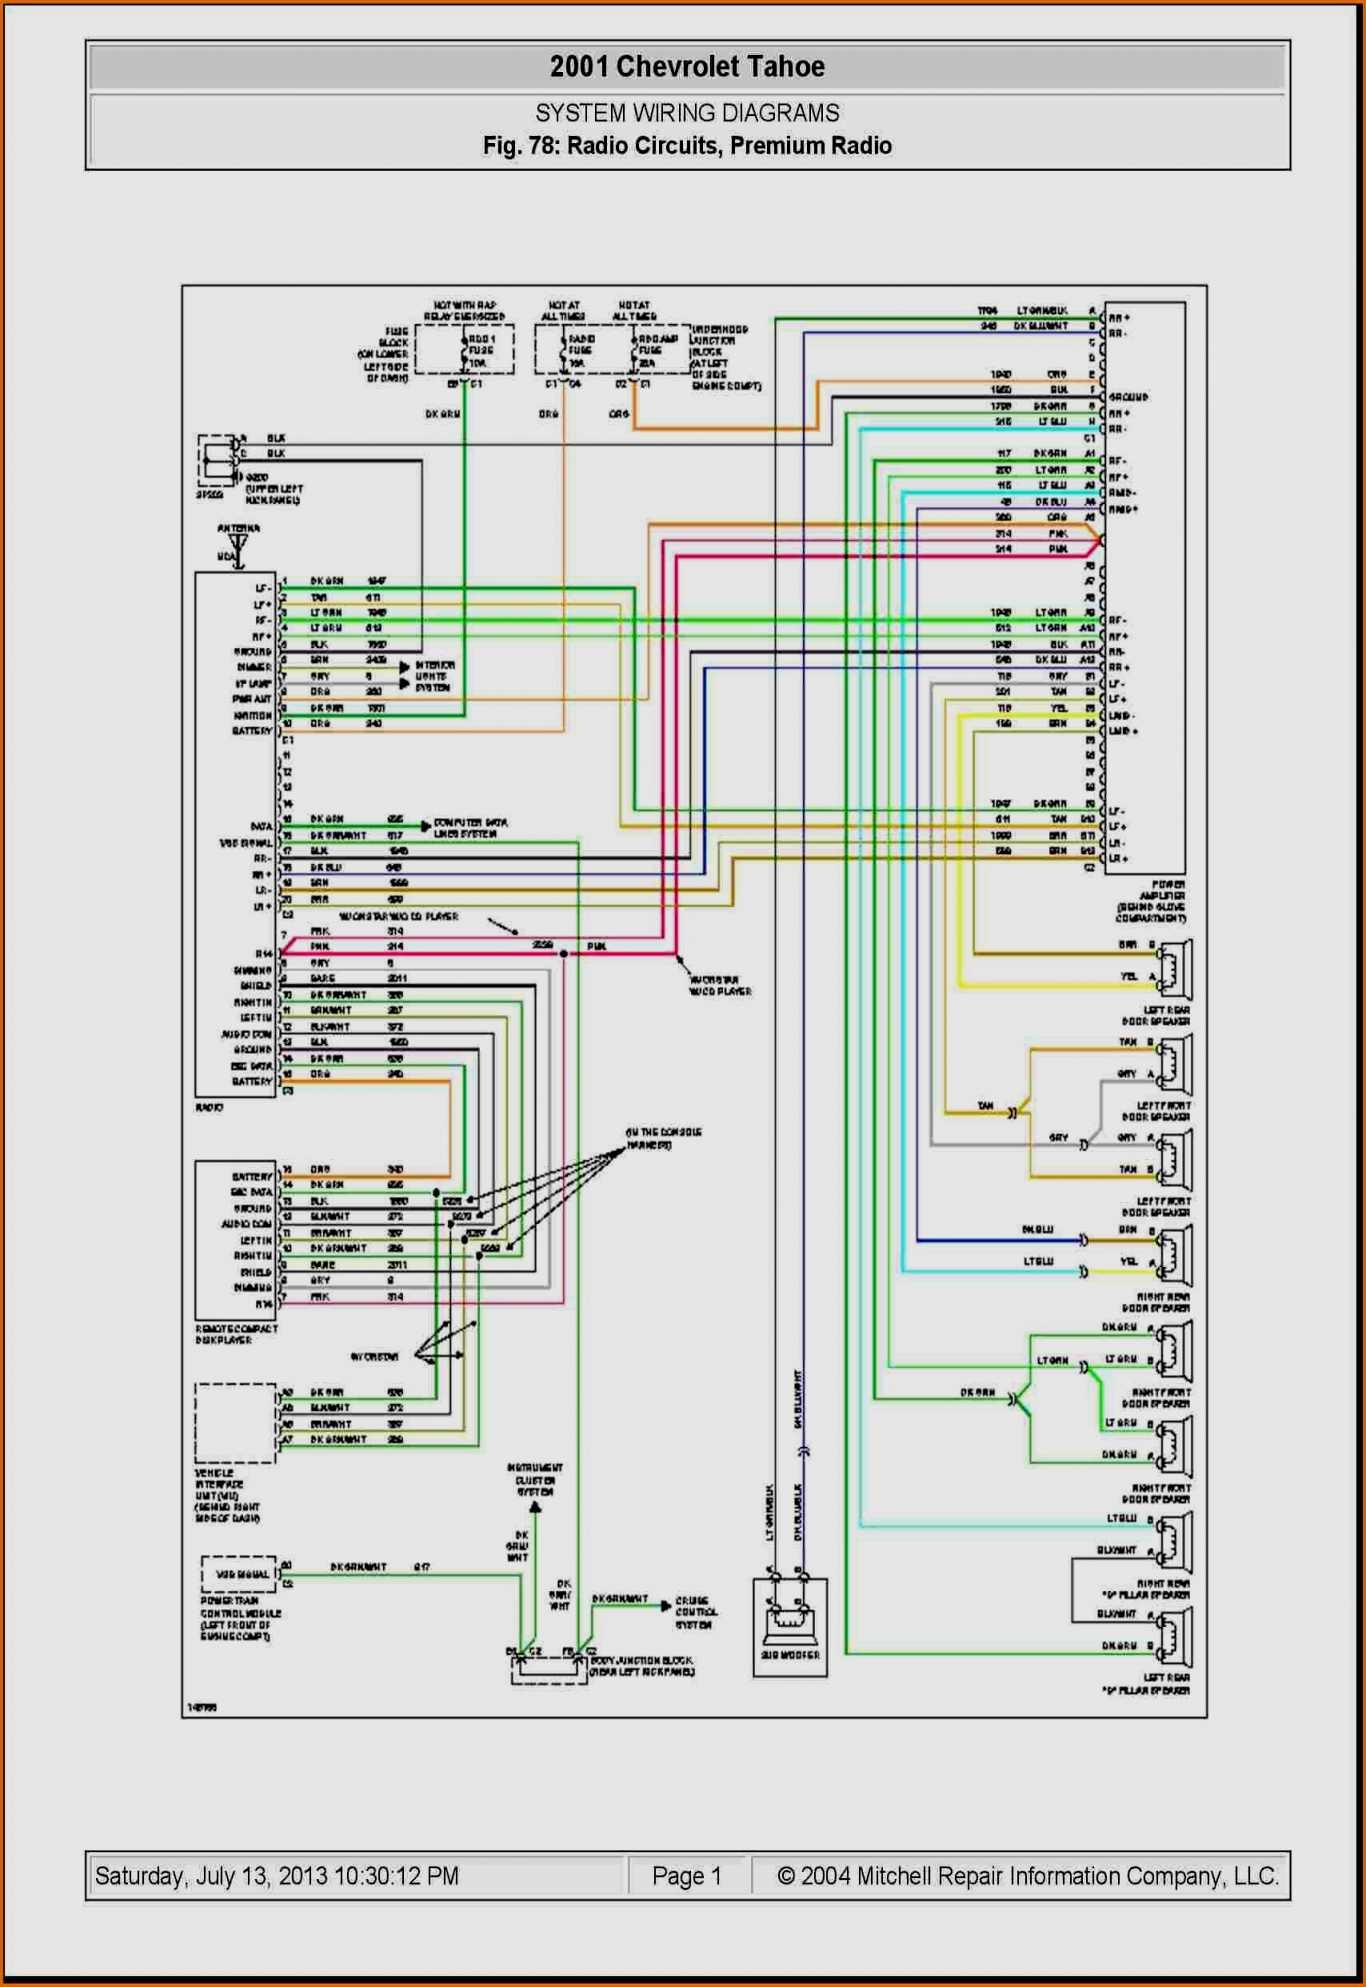 02 envoy wiring harness - wiring diagram 88 chevy 4x4 for wiring diagram  schematics  wiring diagram schematics